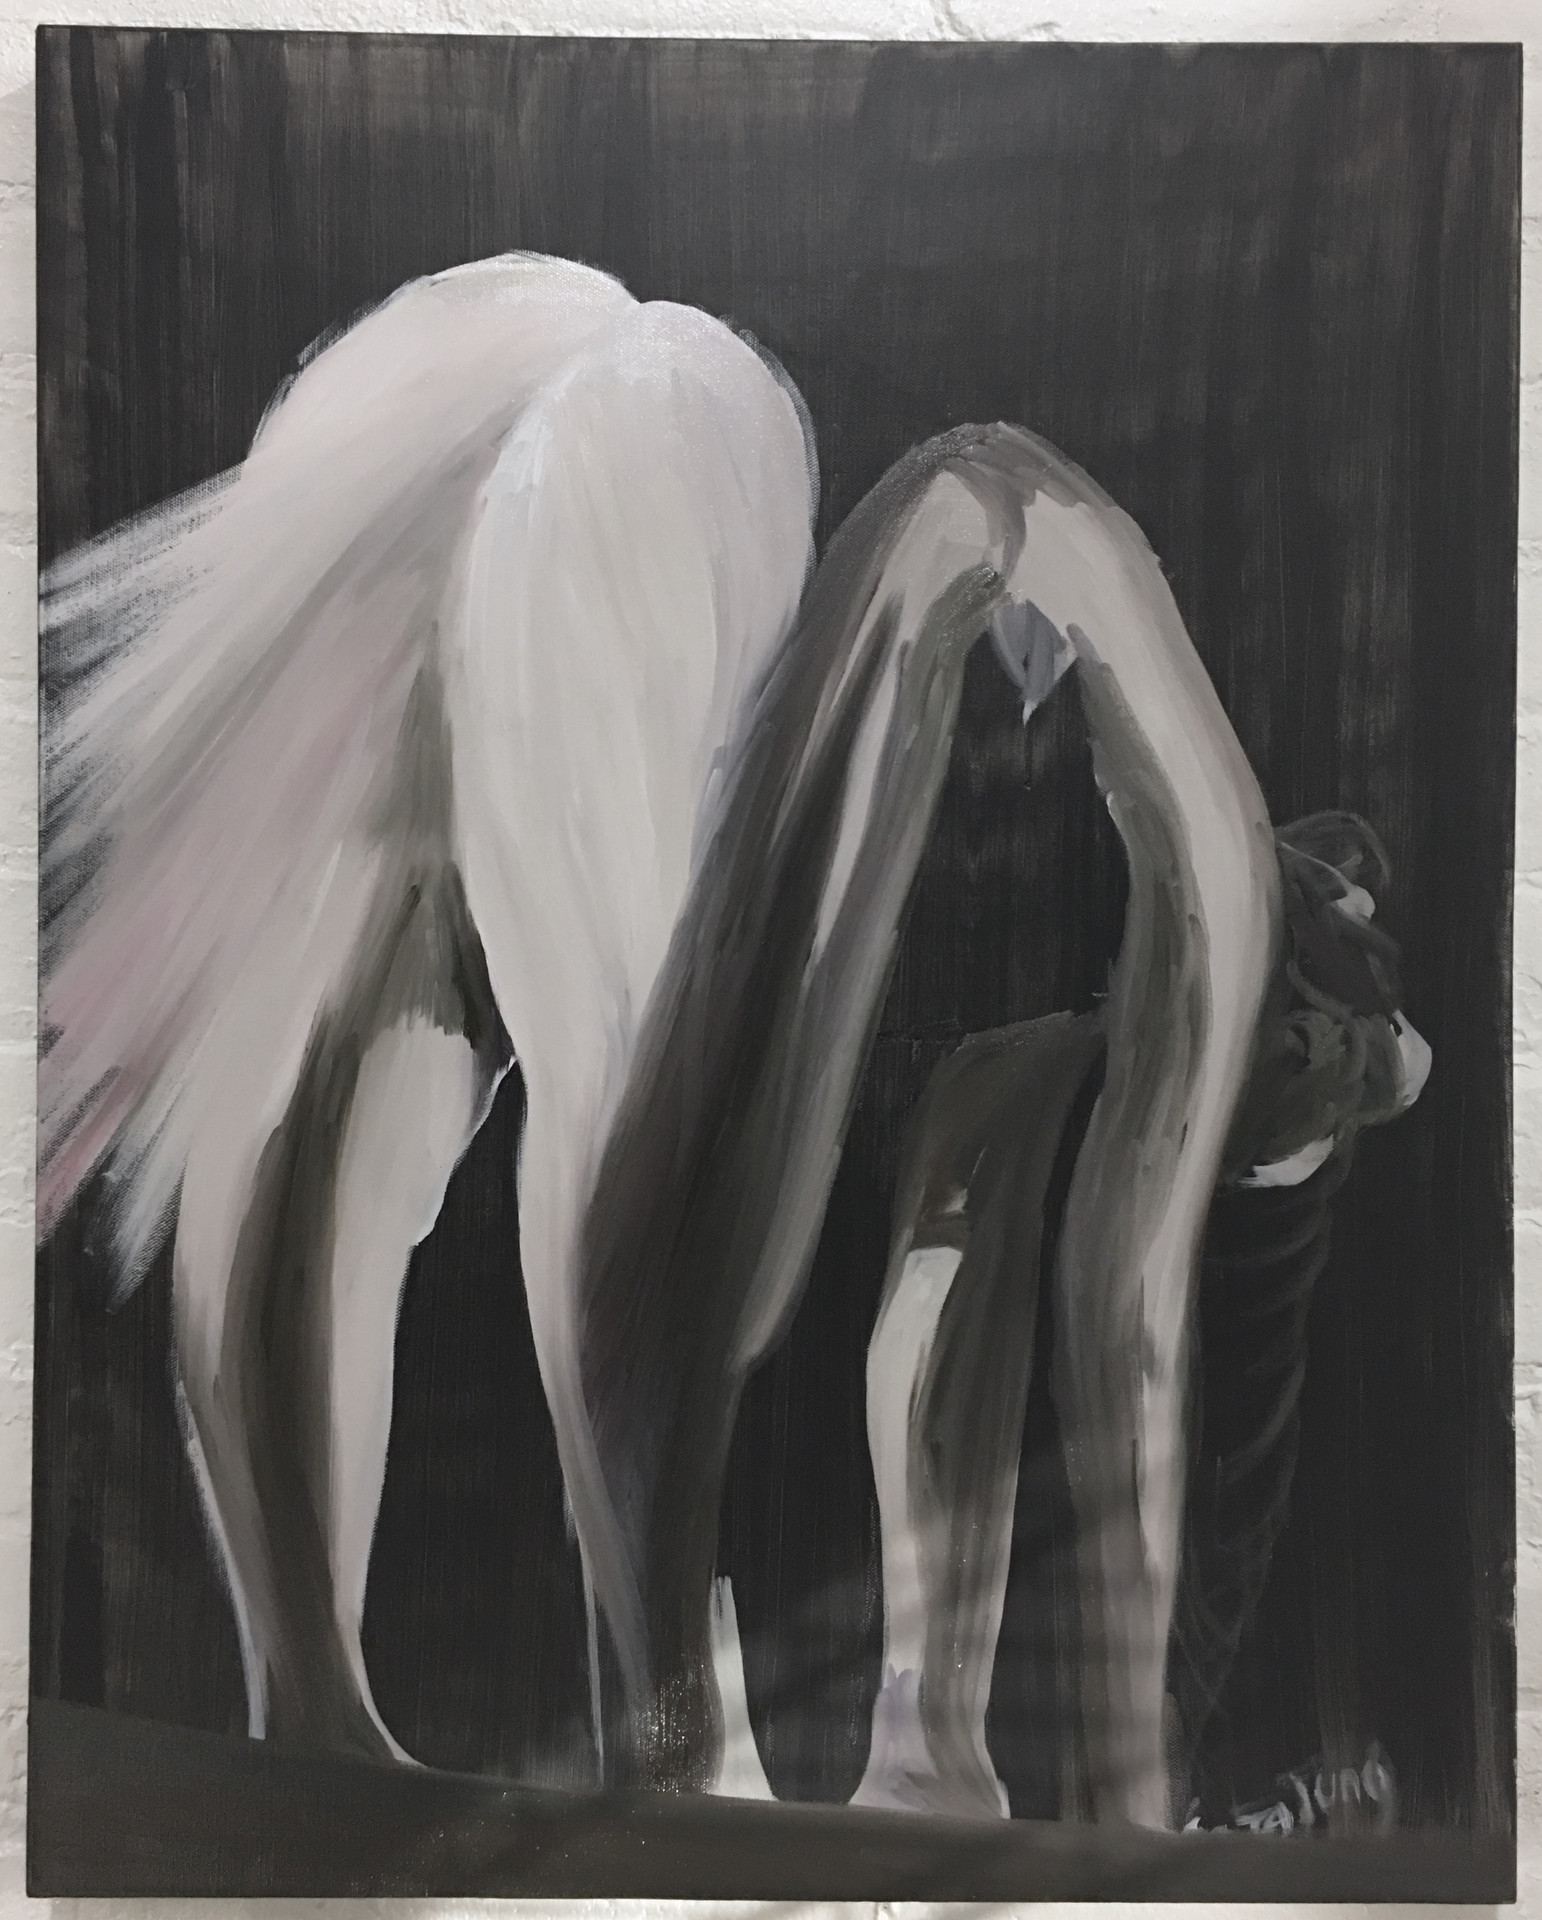 on All Fours, 24x30inches, oil on canvas, 2018